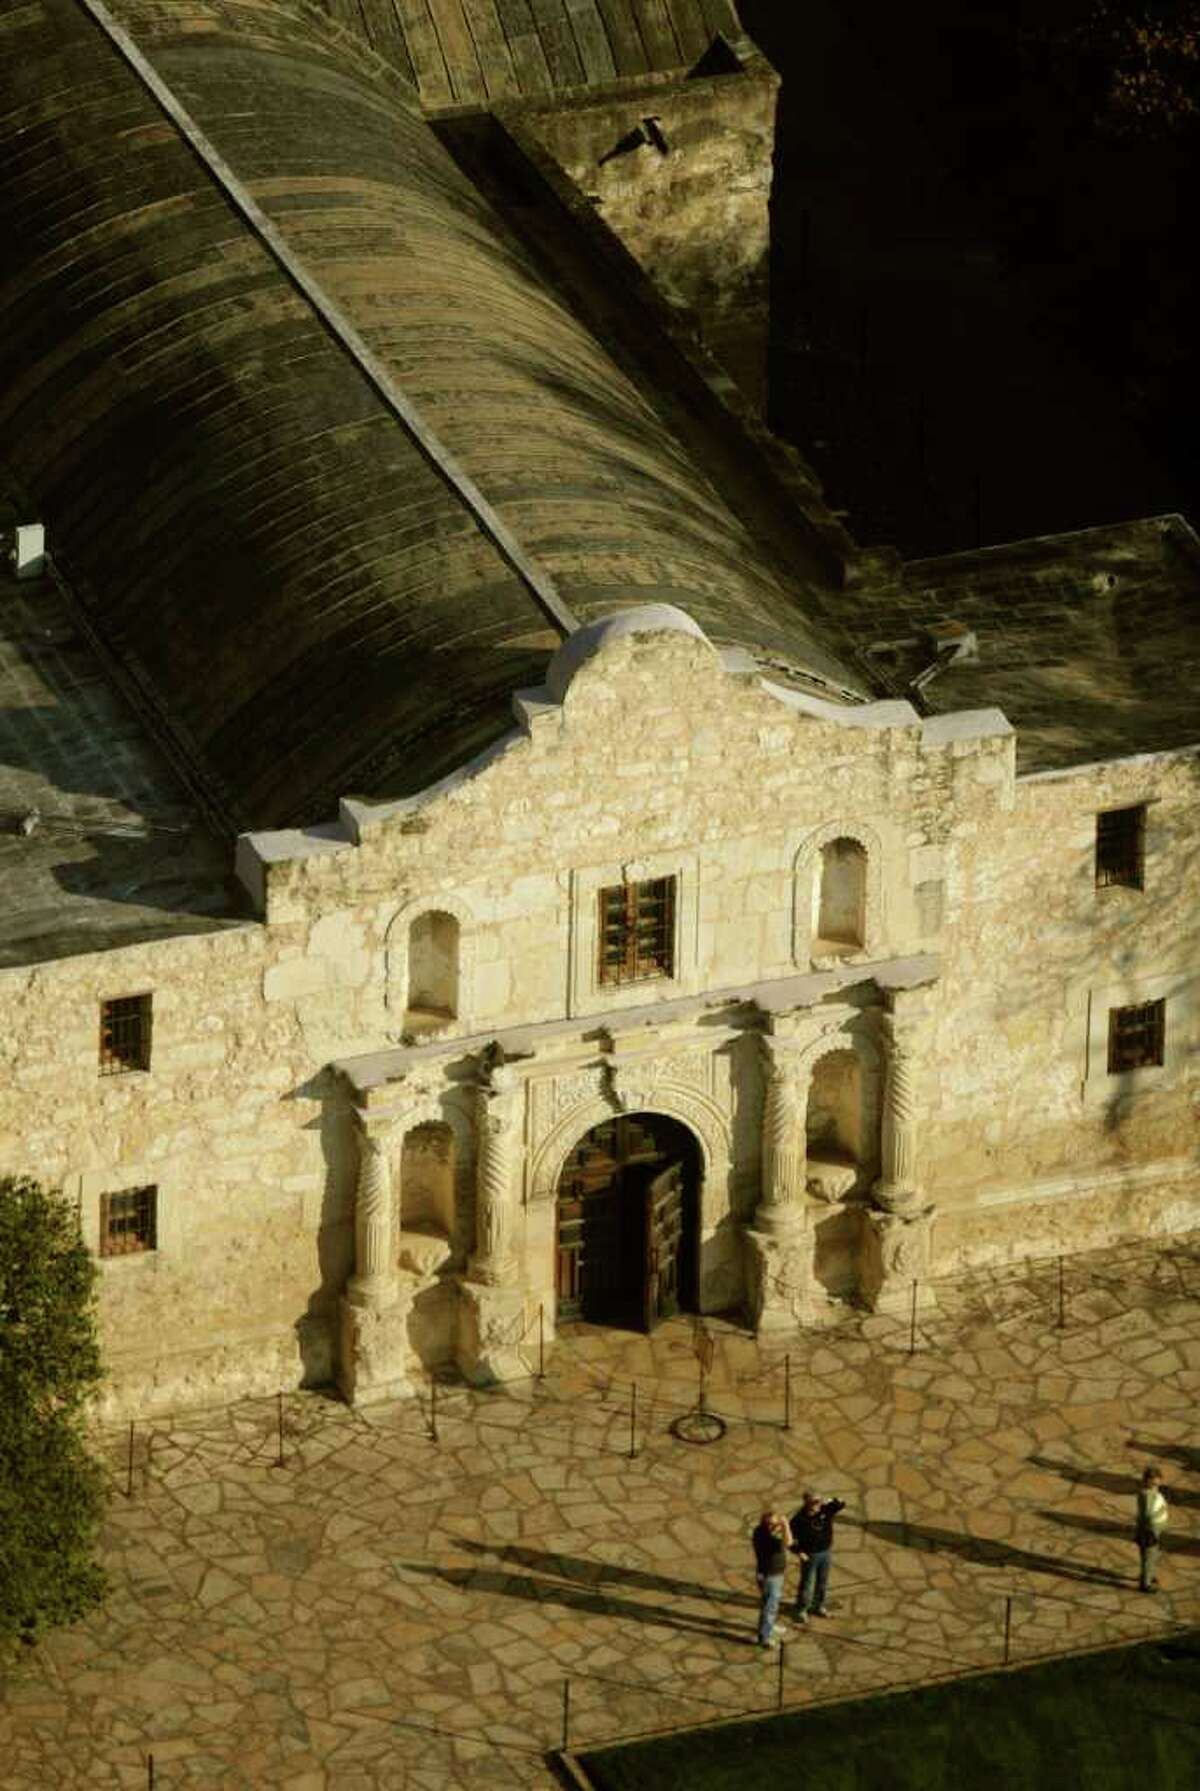 Legislation that would give the General Land Office oversight over the Daughters of the Republic of Texas at the Alamo has been sent to Gov. Rick Perry.